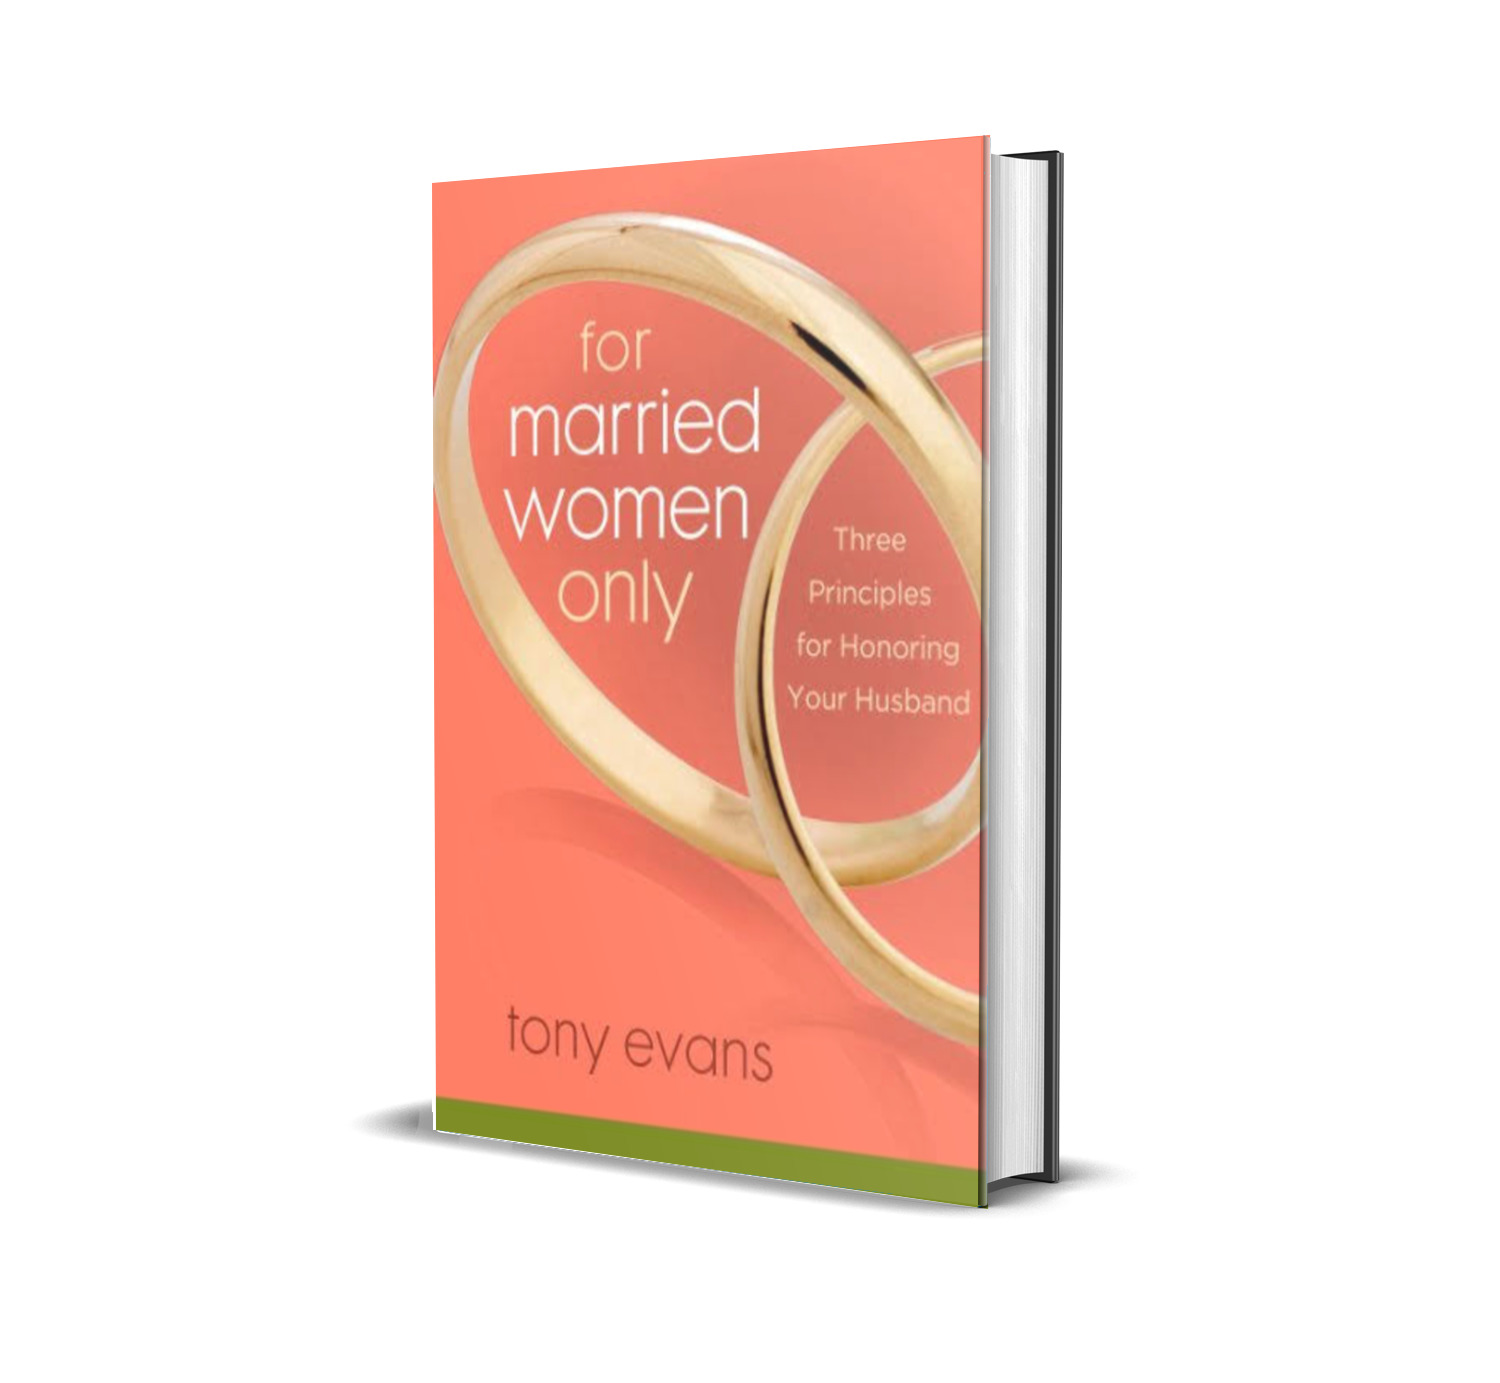 For married women only- Tony Evans